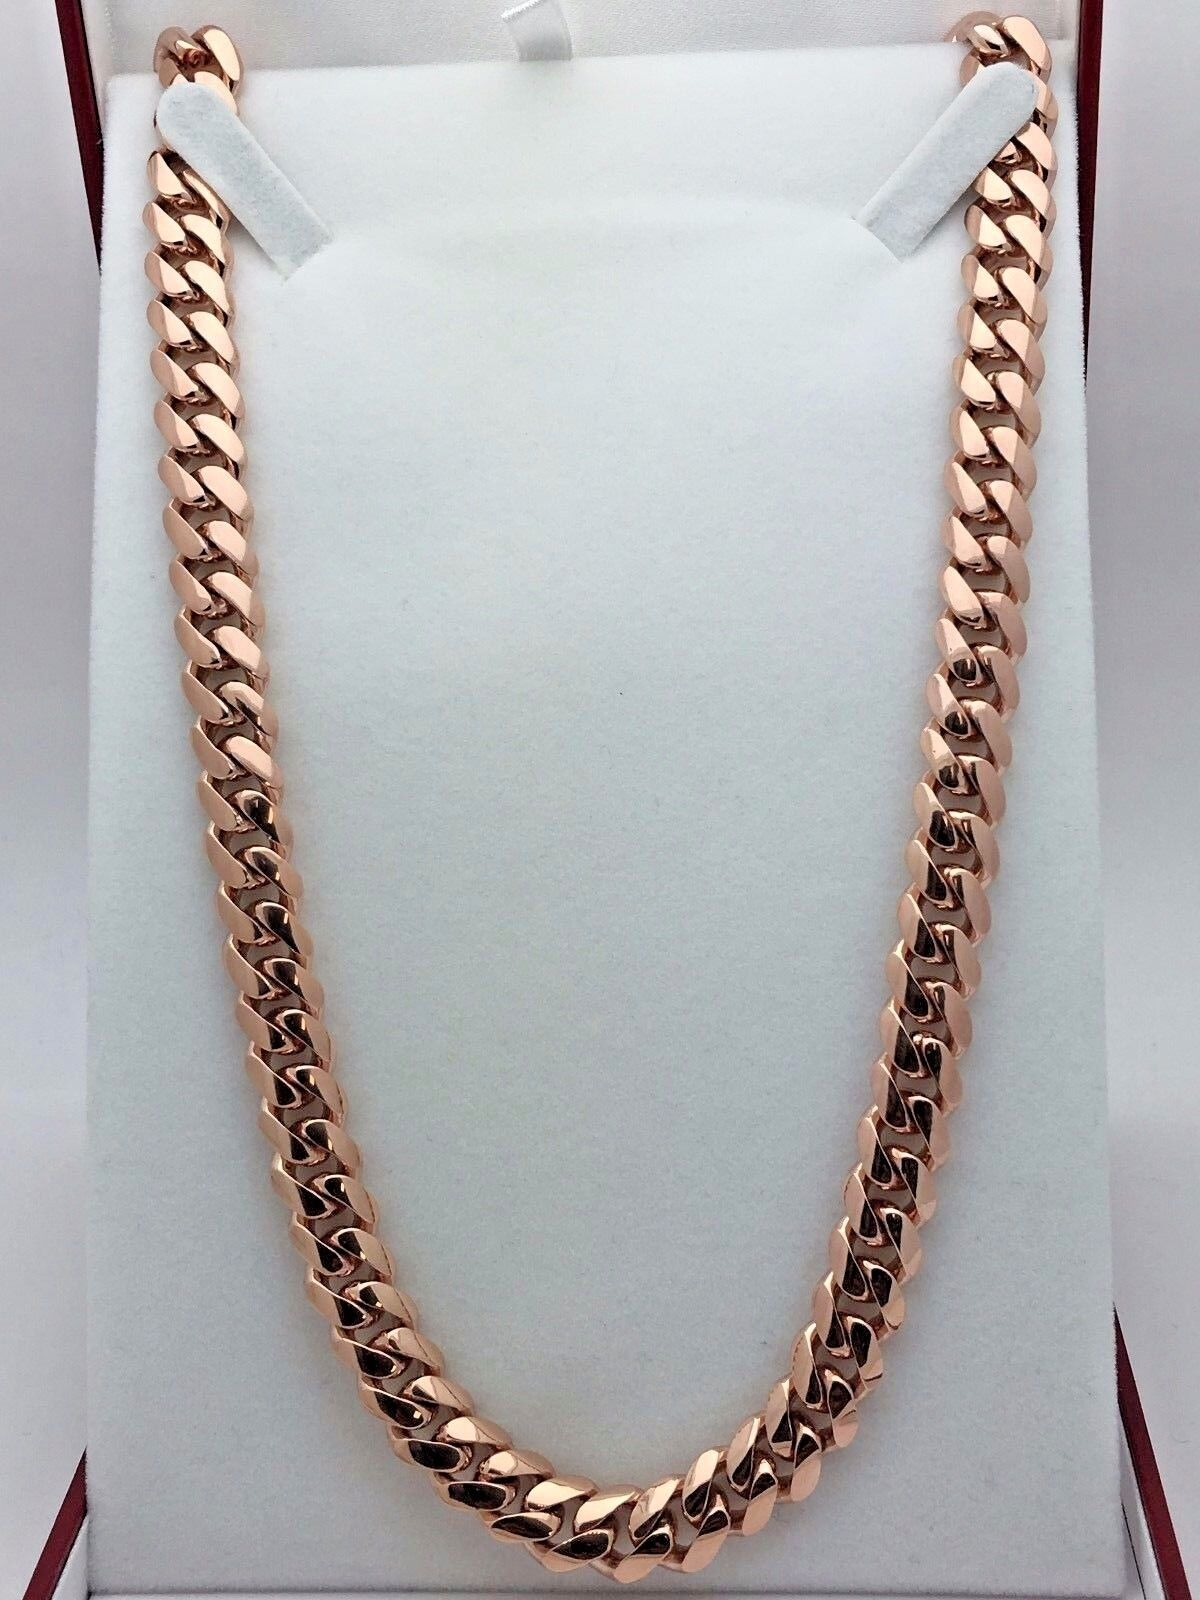 10k Rose Gold Solid Heavy Cuban Link Chain Necklace 20 10mm 130 Grams Ebay